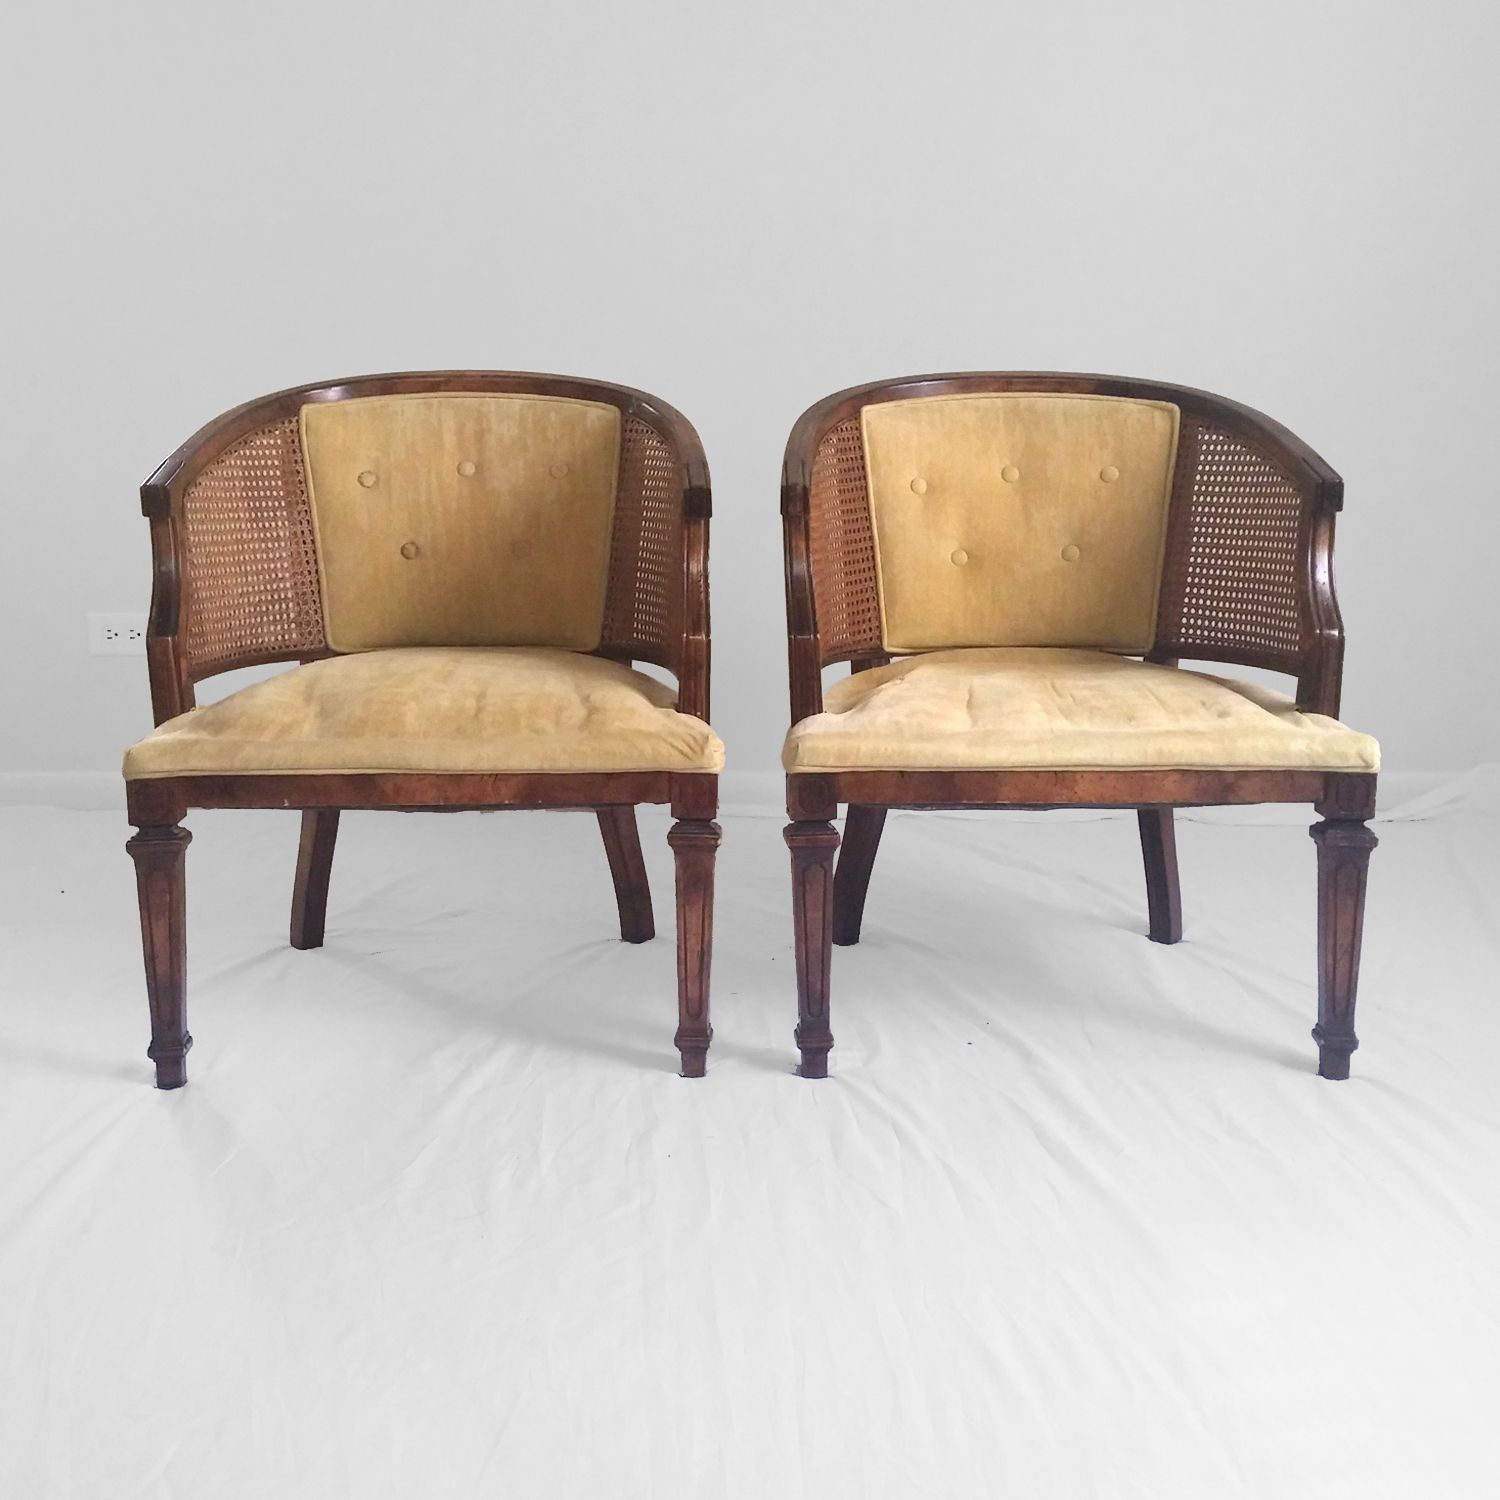 REDO for living room seating - 2 Hollywood Regency Neoclassical ...